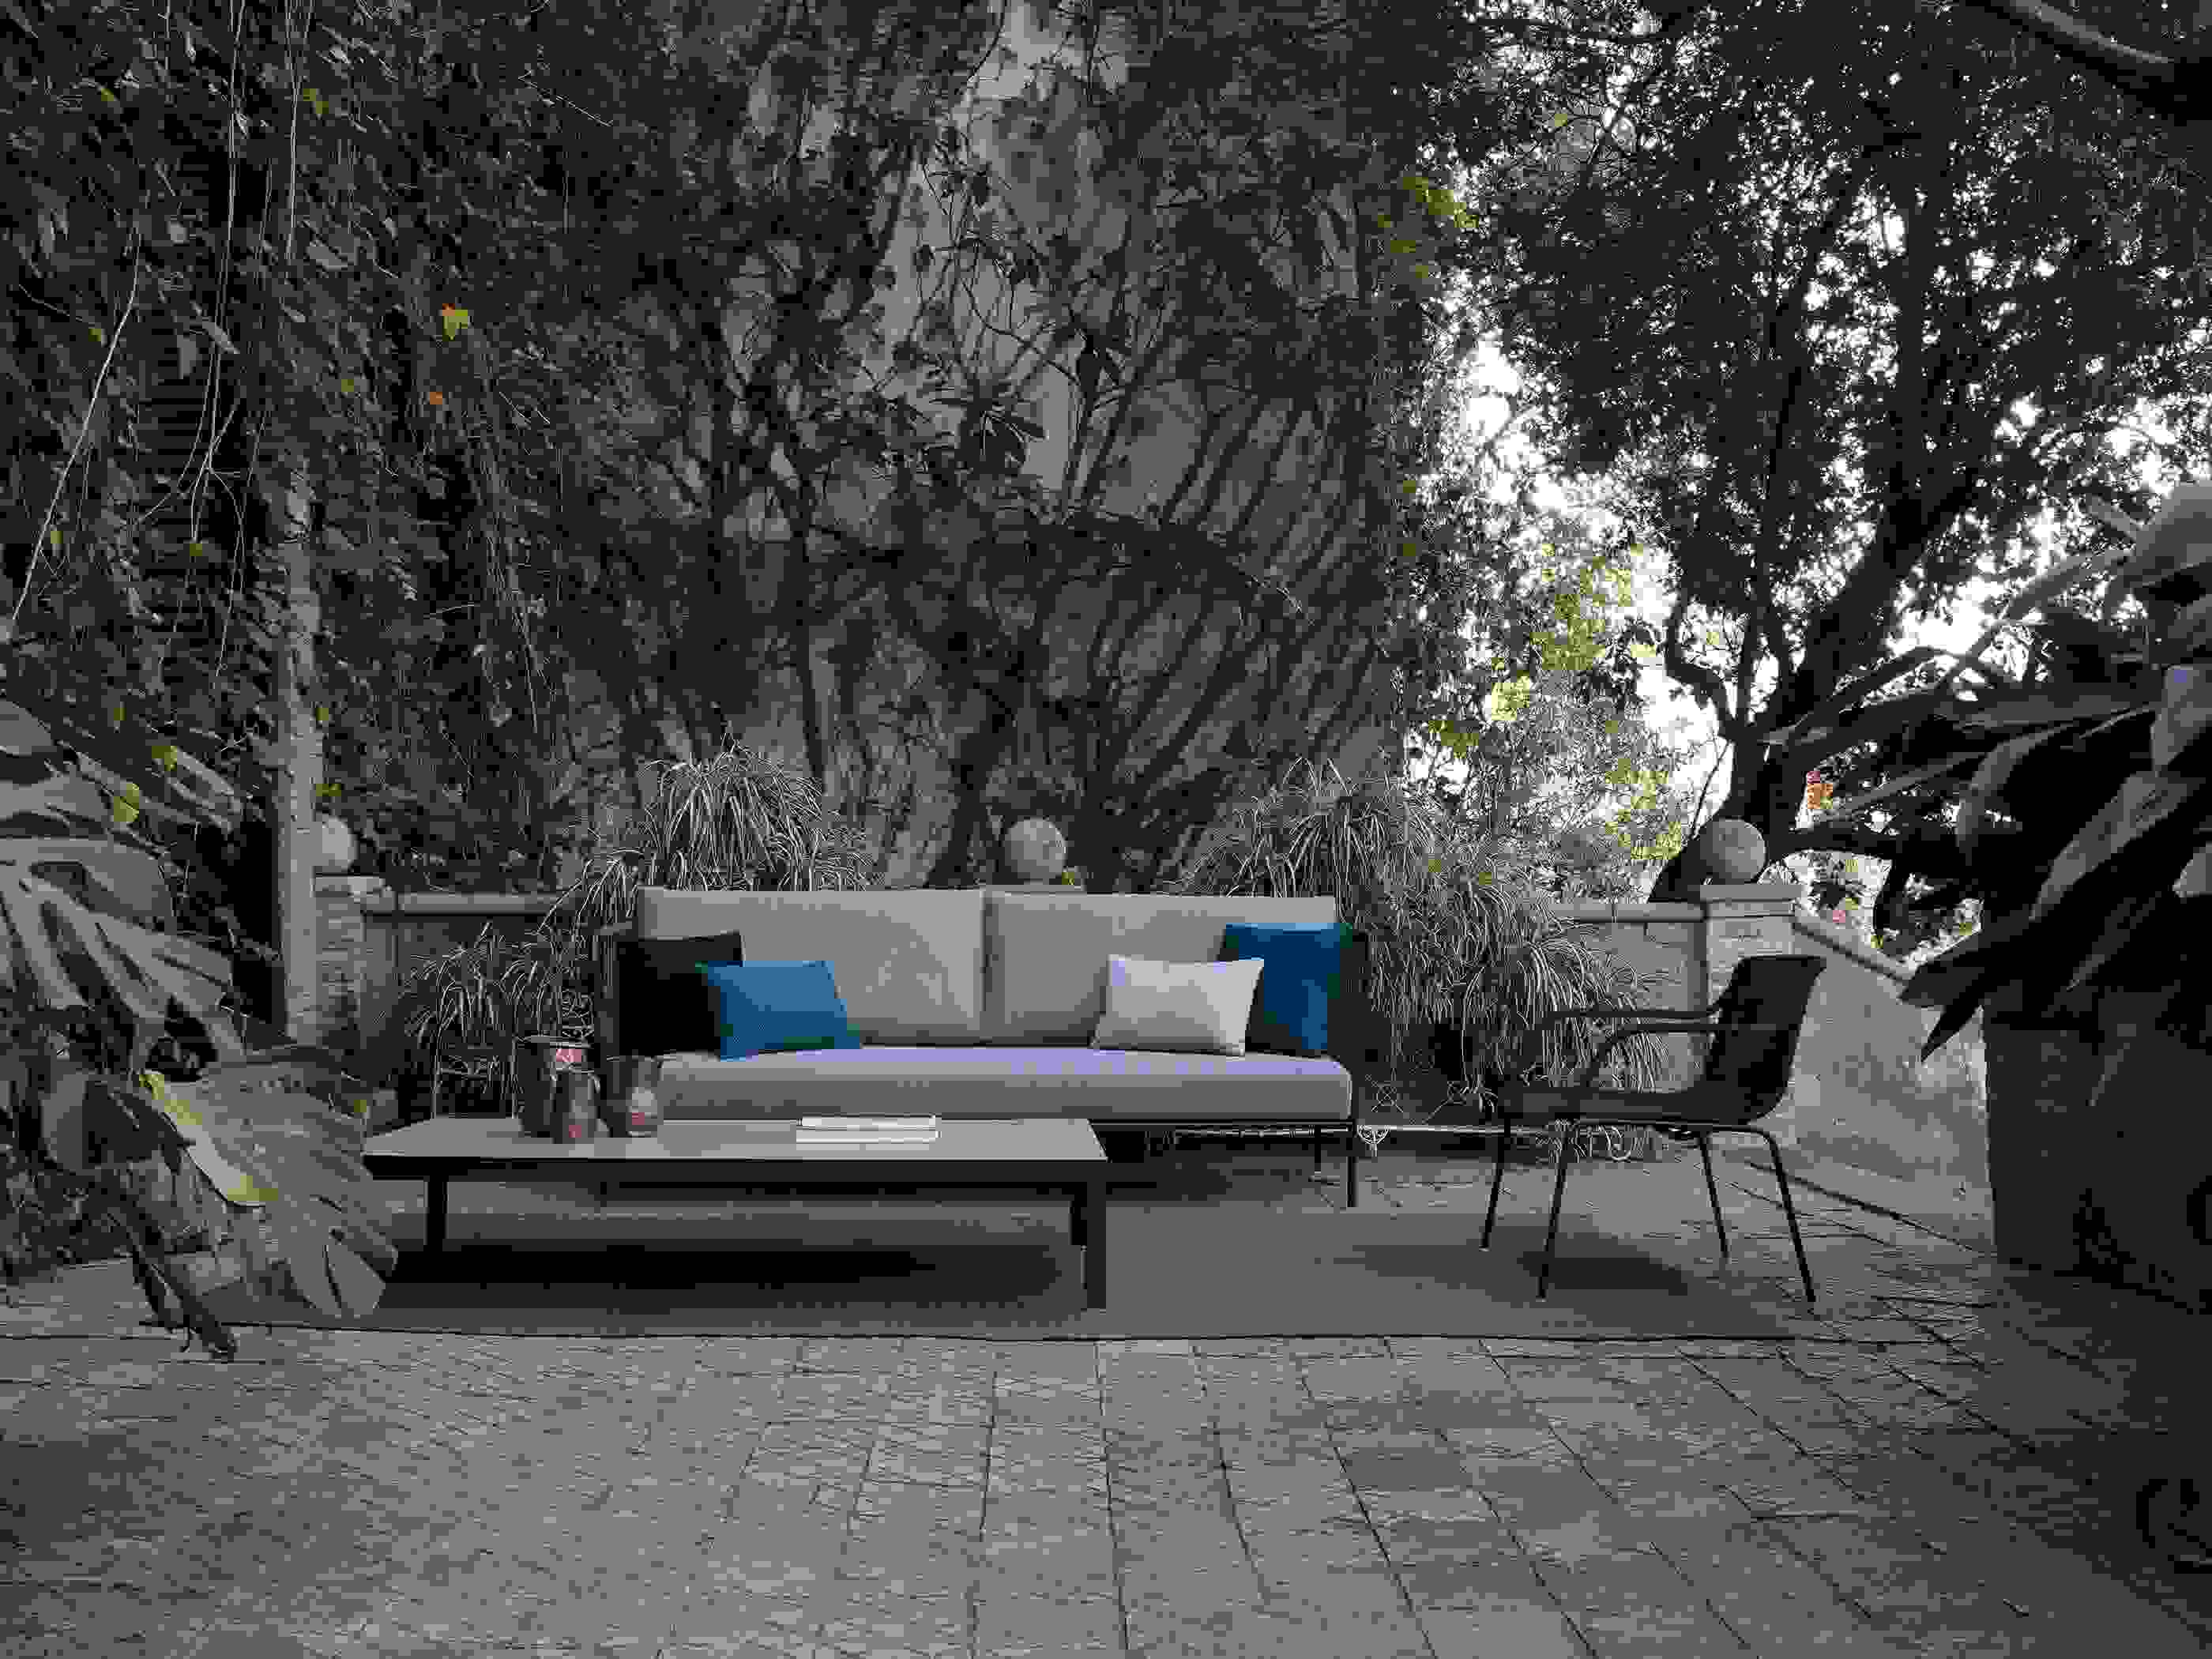 58_59-expormim-nido-outdoor-seating-collection.jpg